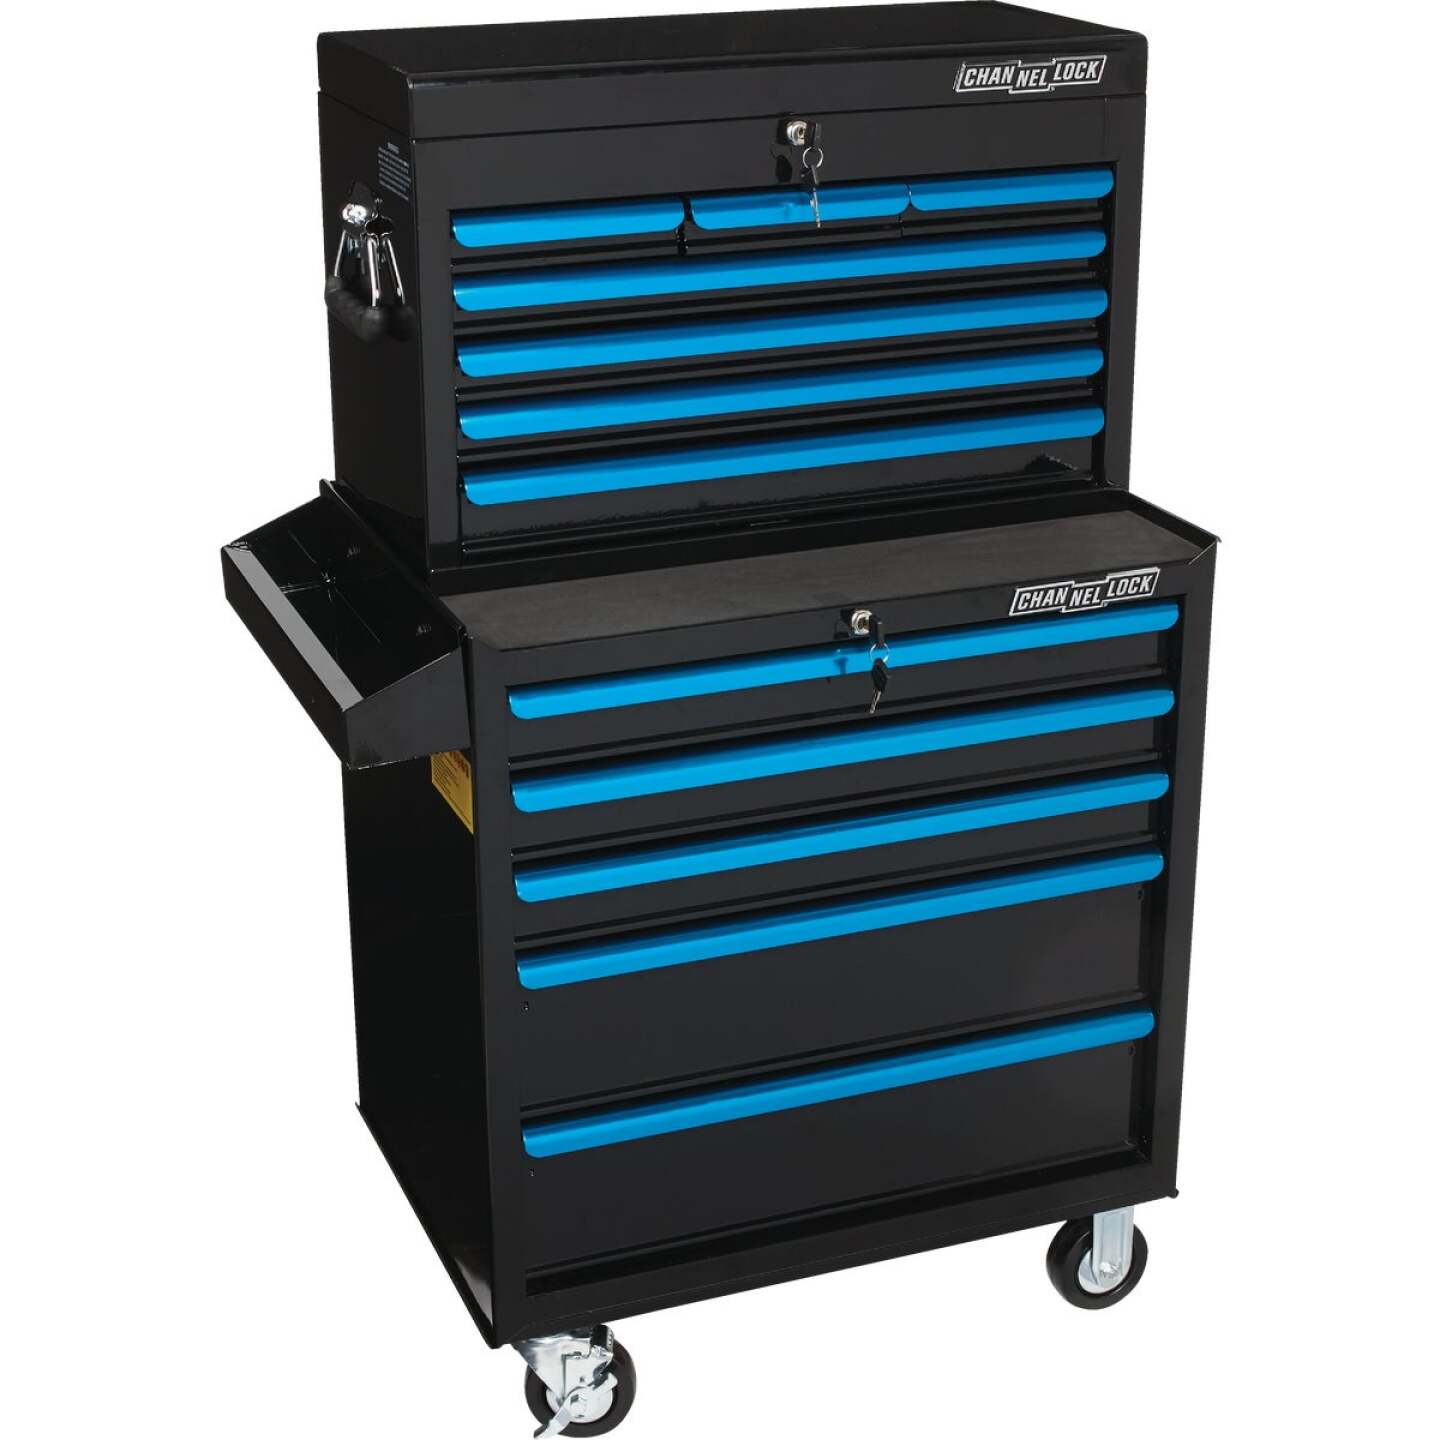 Channellock 26 In. 7-Drawer Black and Blue Tool Chest Image 4